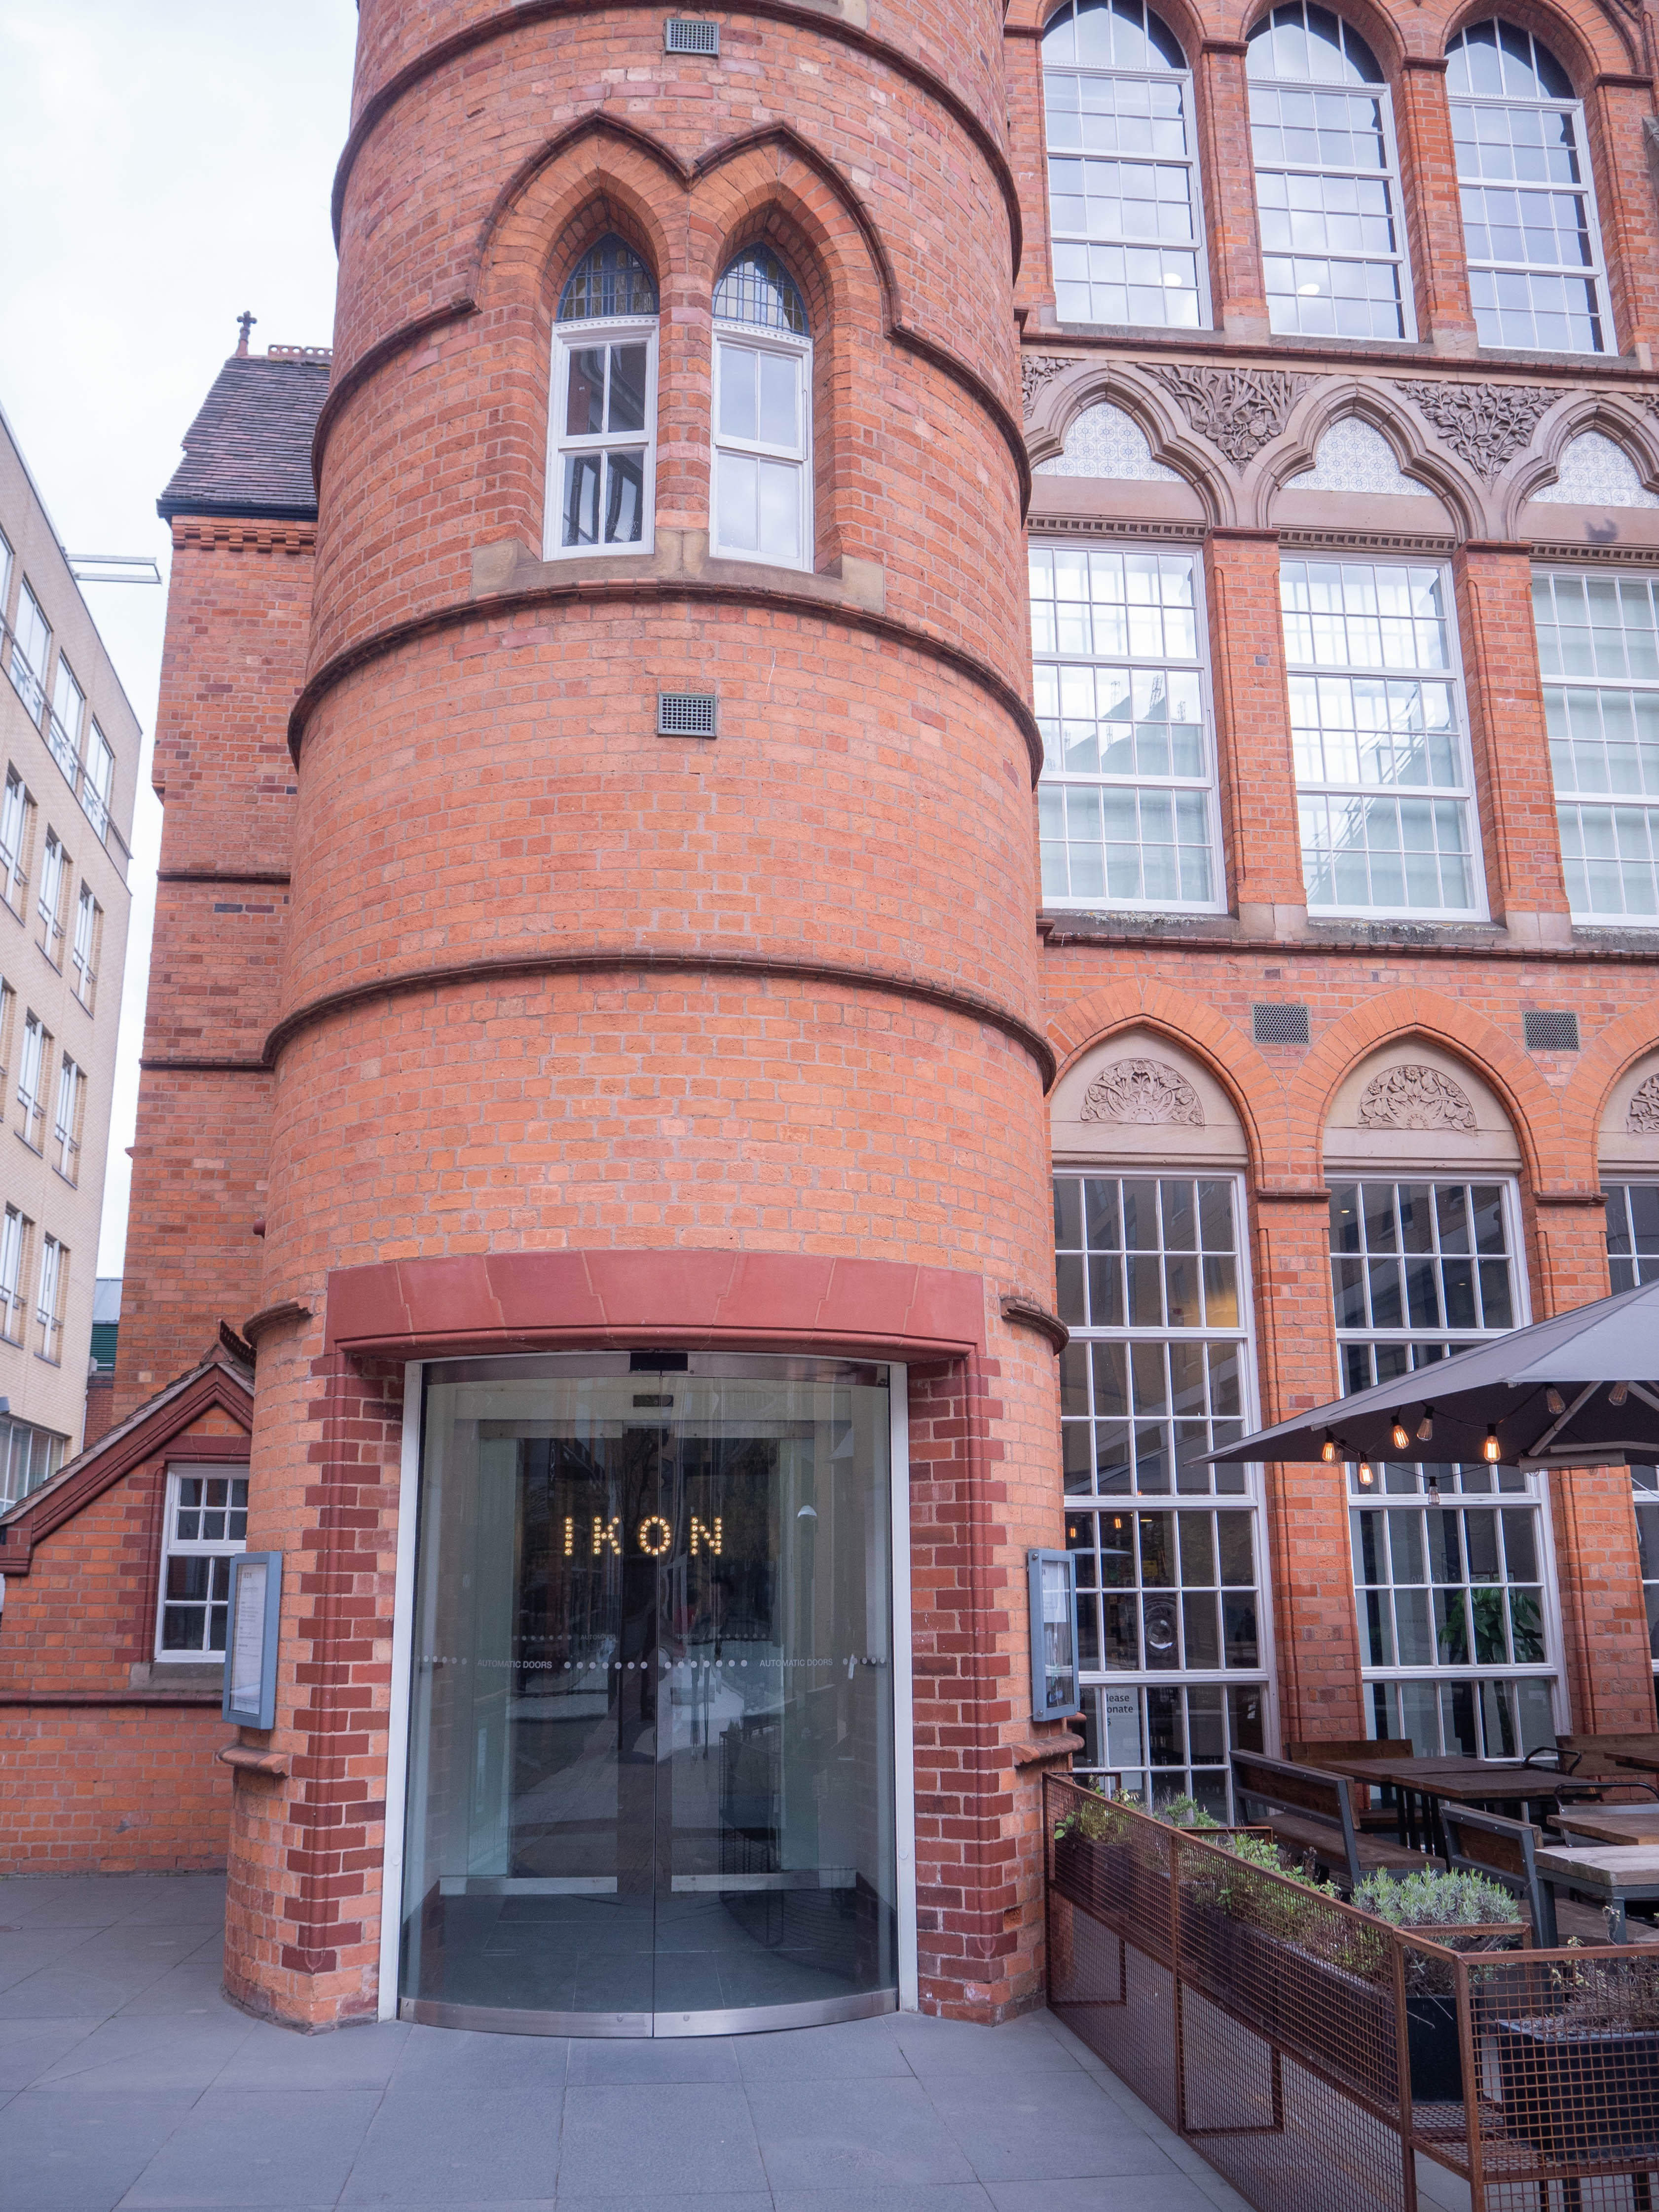 The exterior of Ikon Gallery